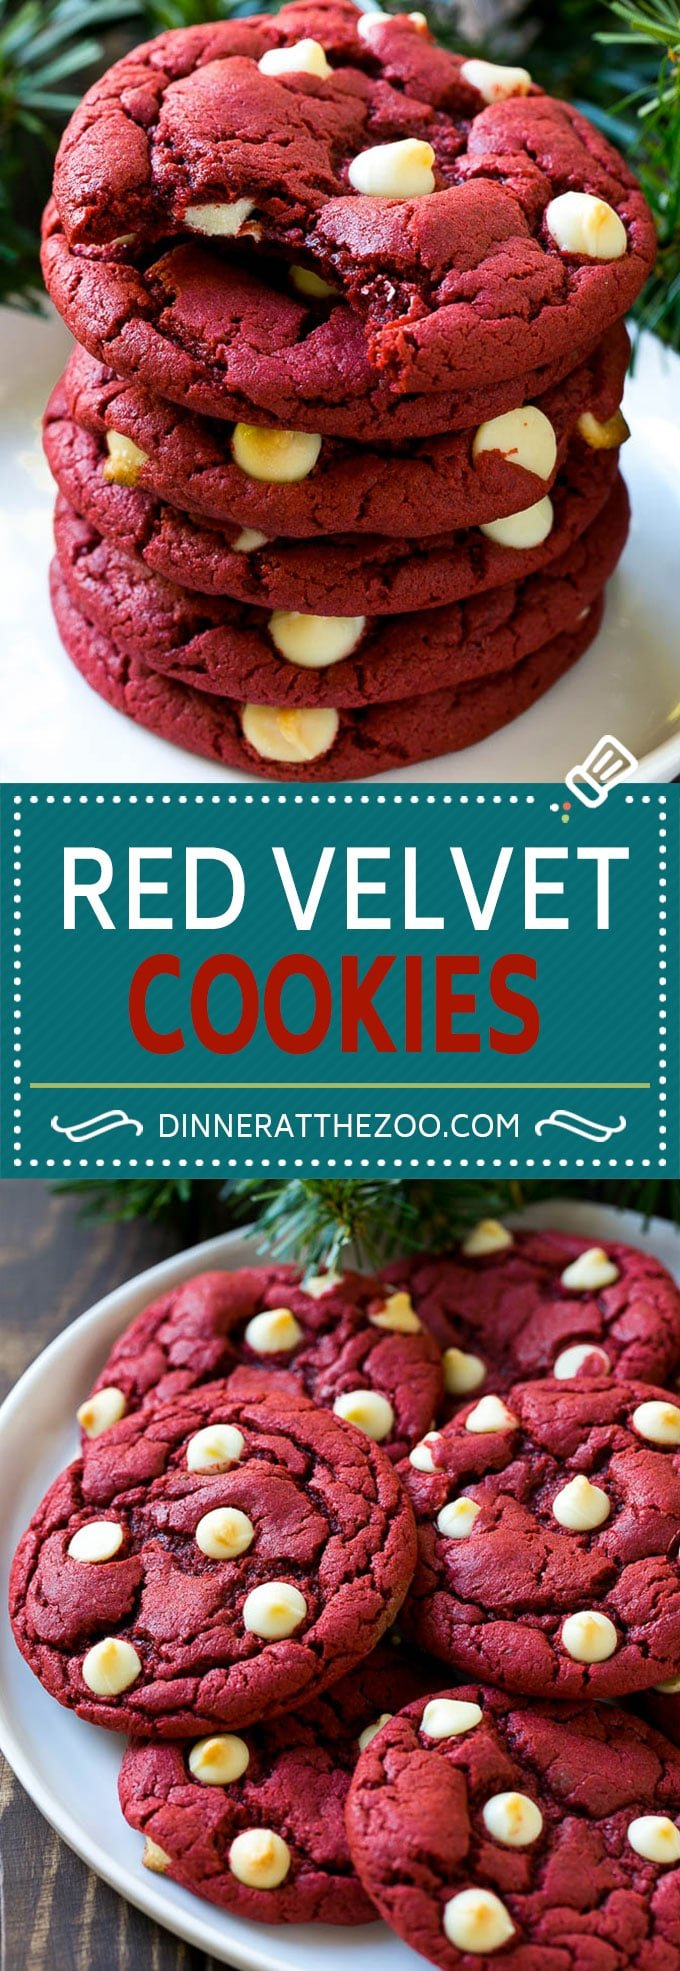 Red Velvet Cookies Recipe | Red Velvet Cookies with White Chocolate Chips | Red Velvet Cake Mix Cookies #redvelvet #cookies #whitechocolate #christmas #dinneratthezoo